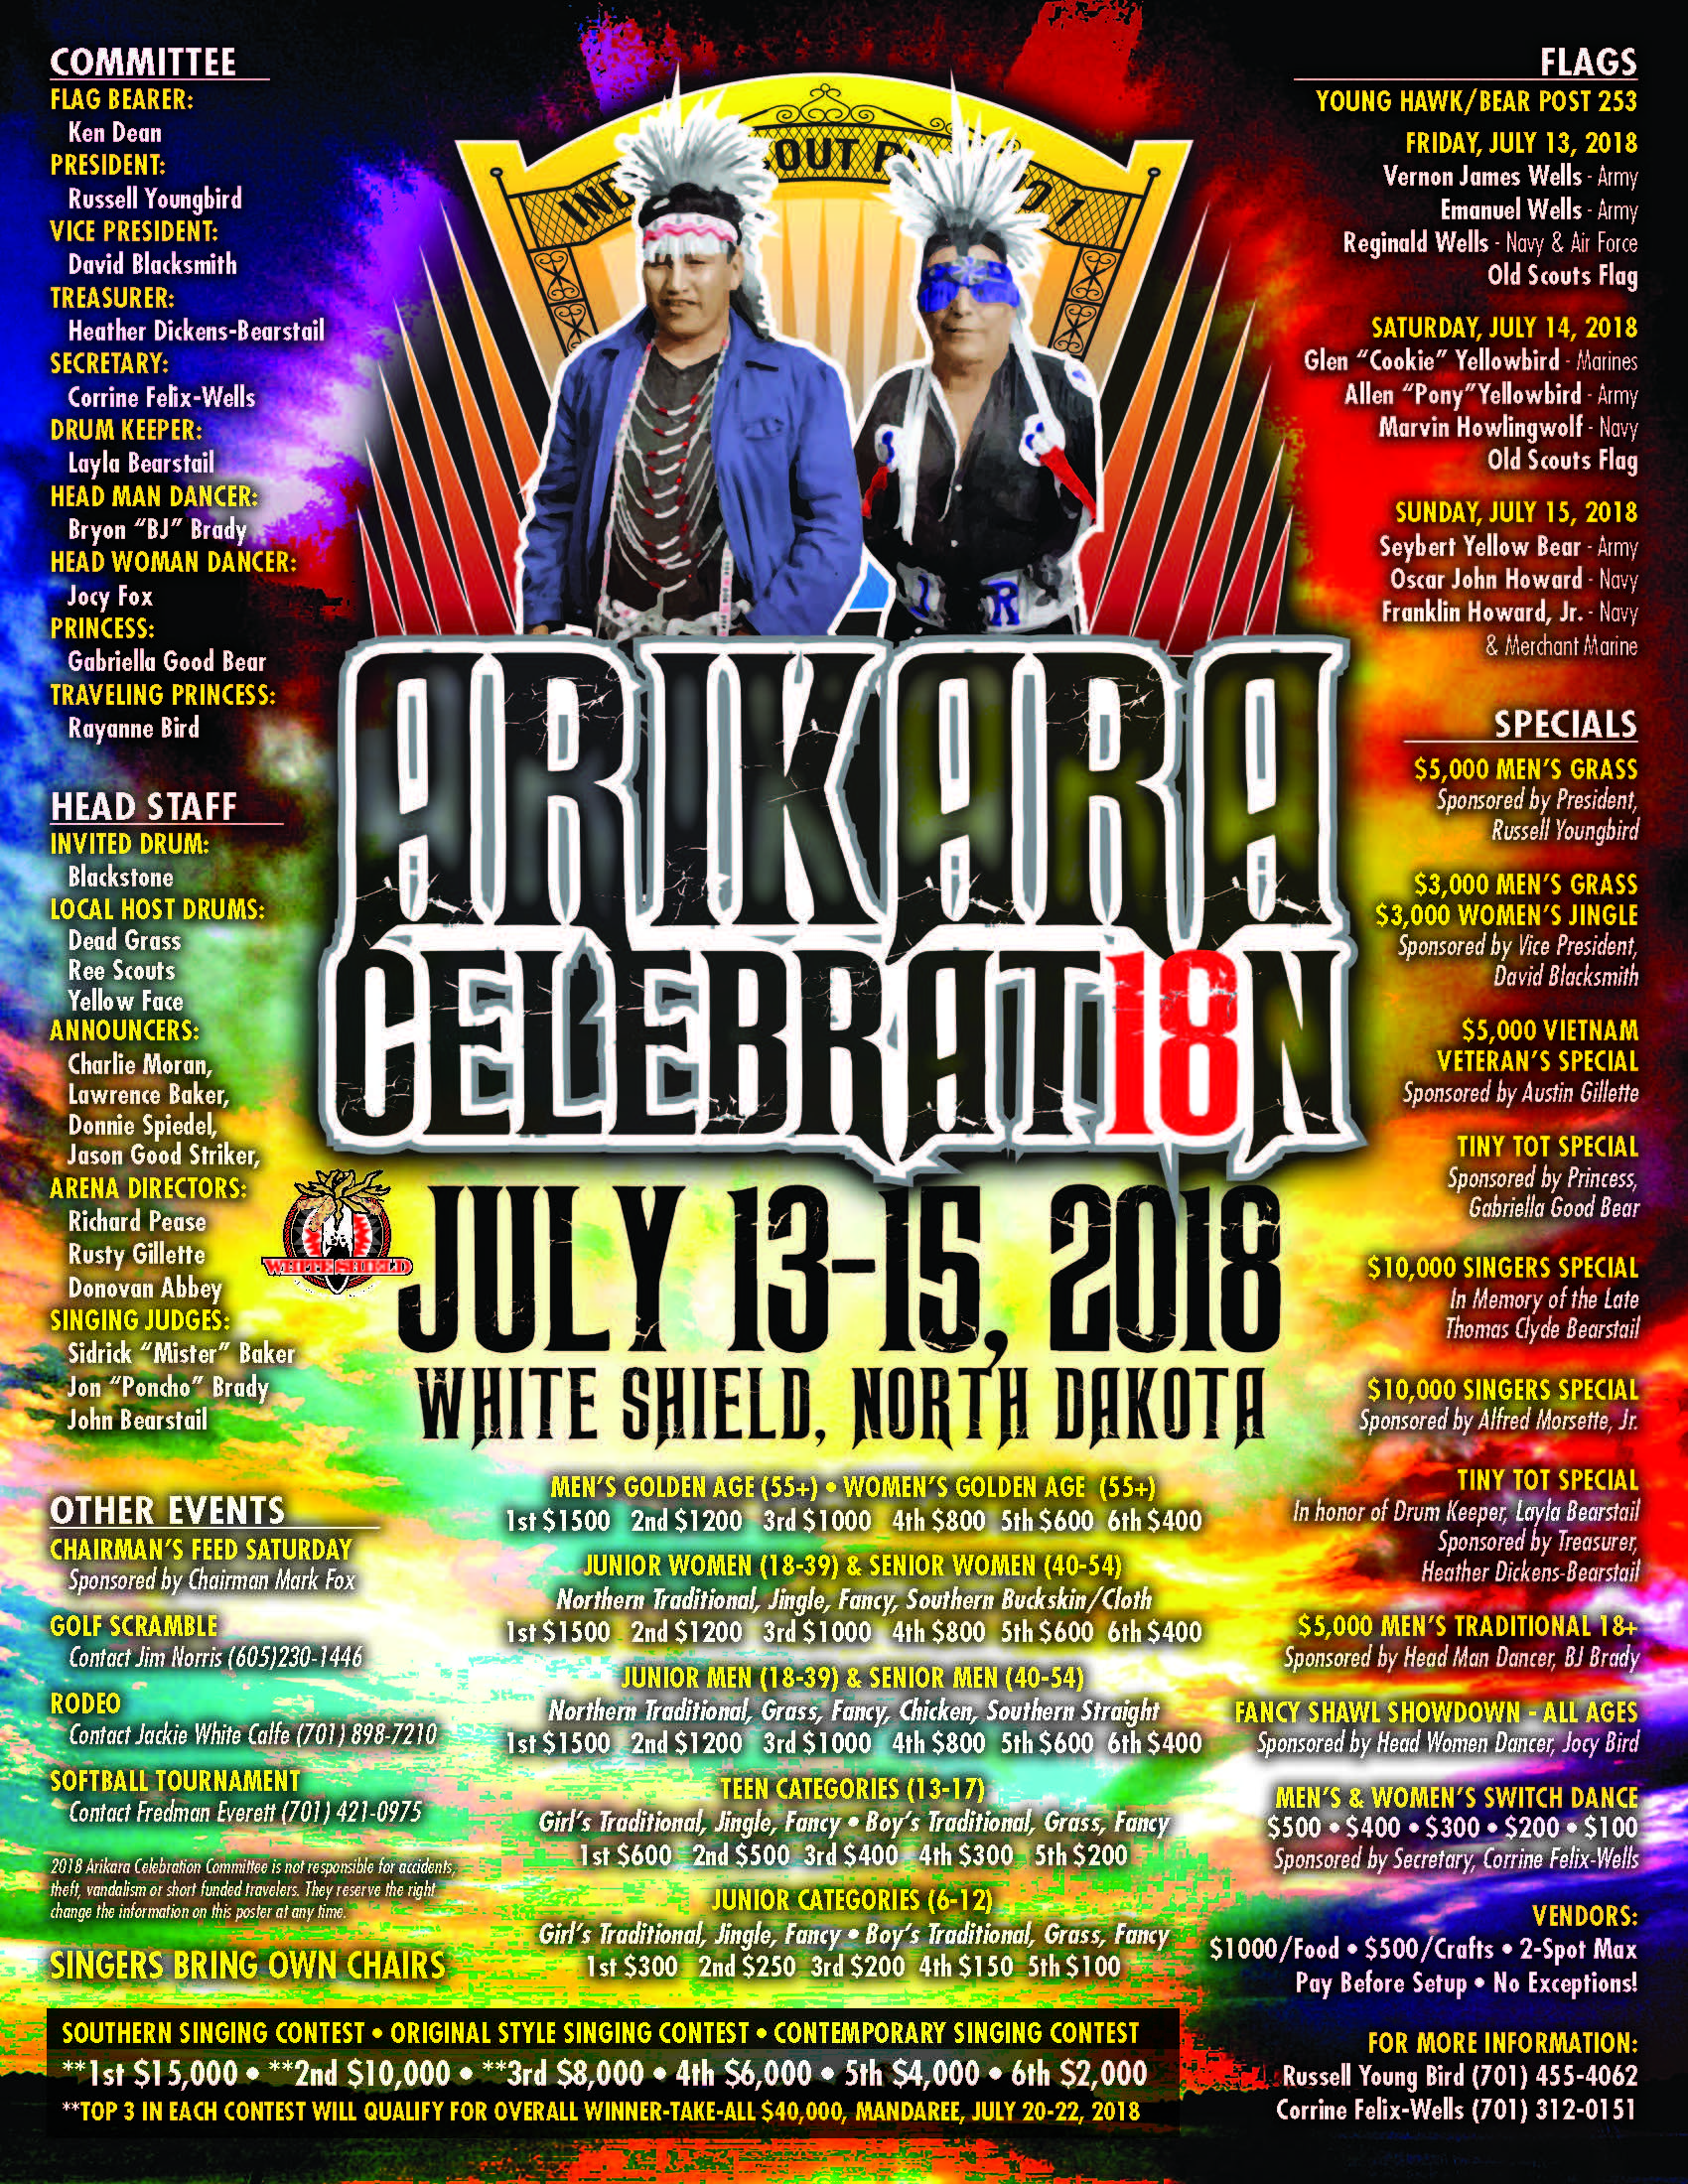 Arikara White Shield Segment Celebration July 13-15, 2018.jpg